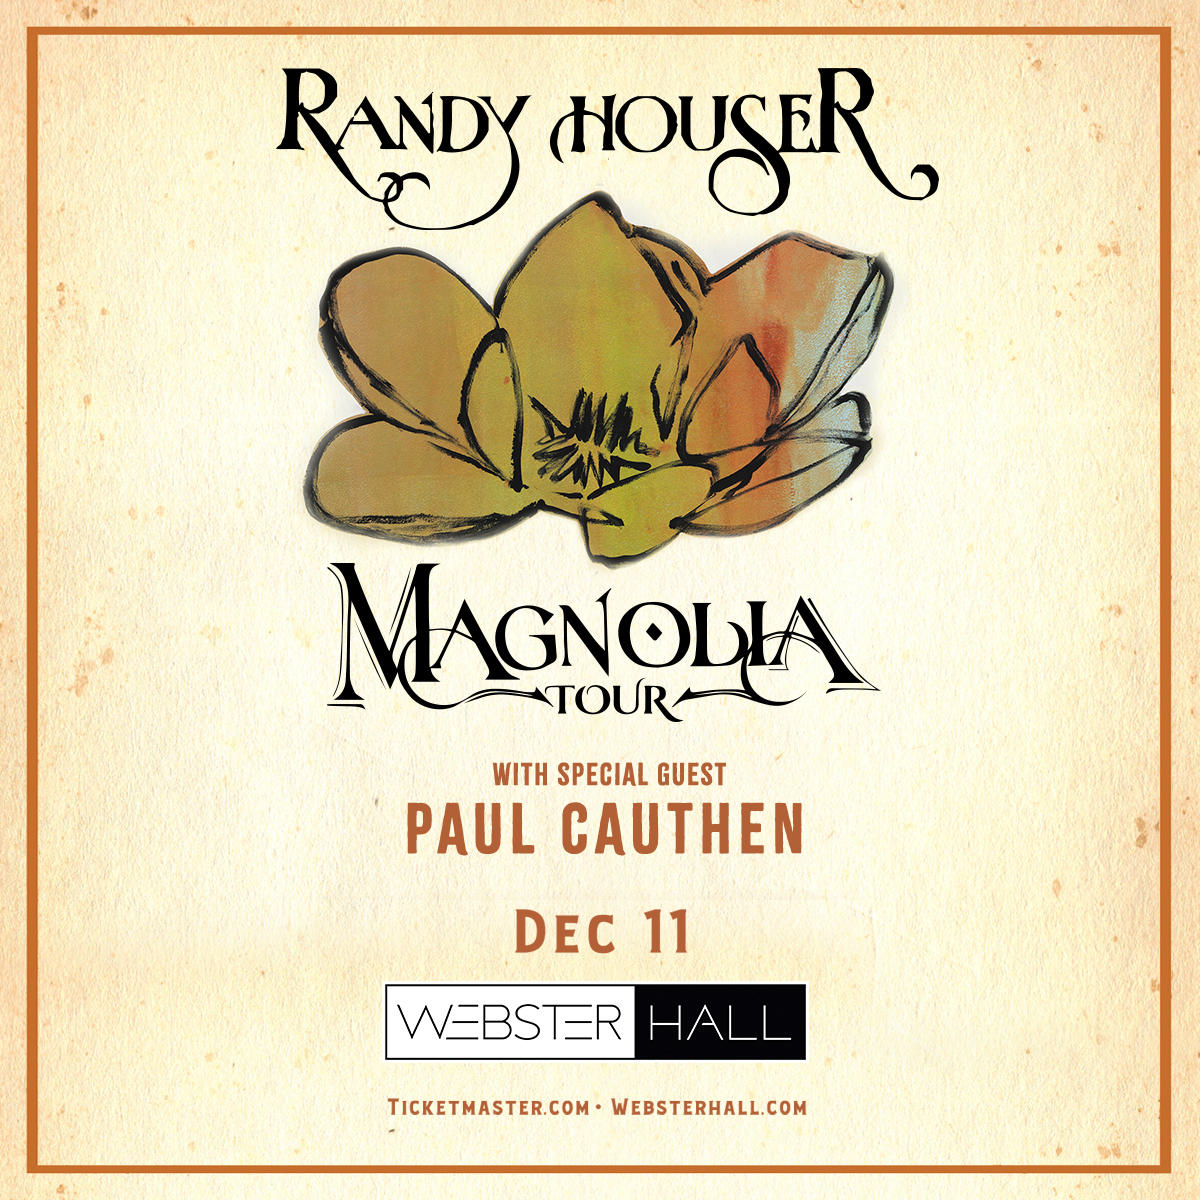 Randy Houser Tour 2019